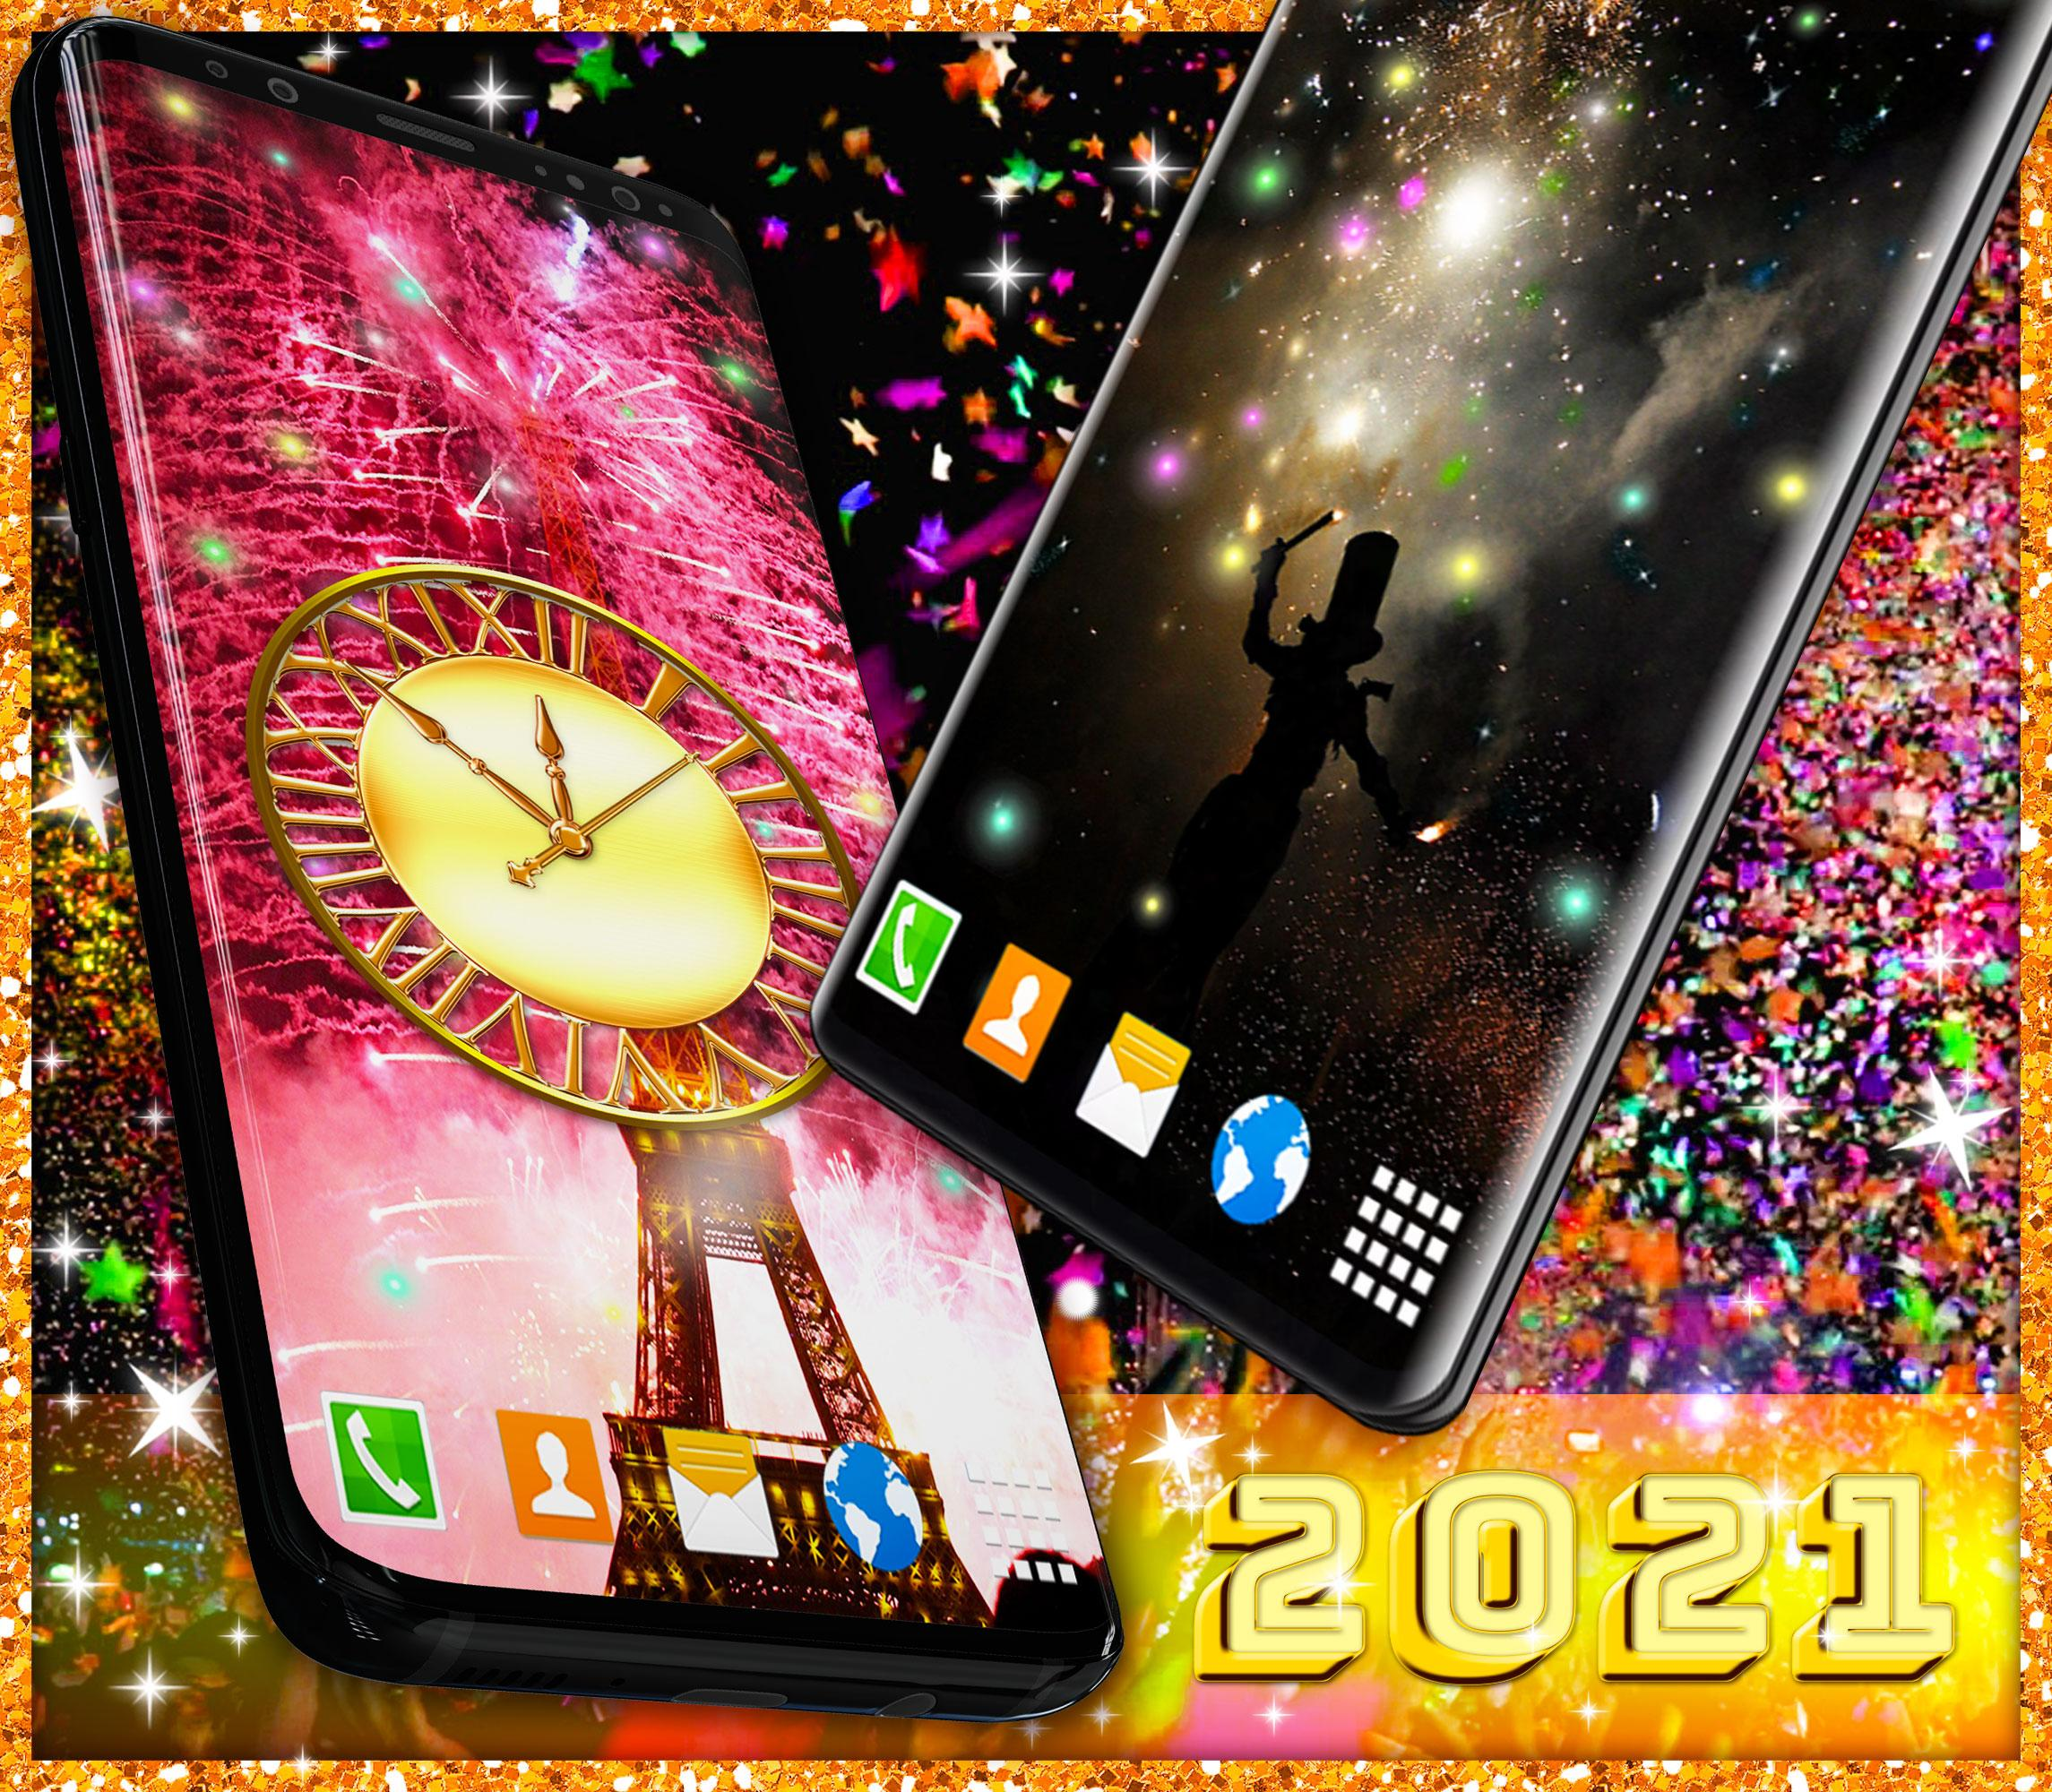 New Years Eve Live Wallpaper For Android Apk Download